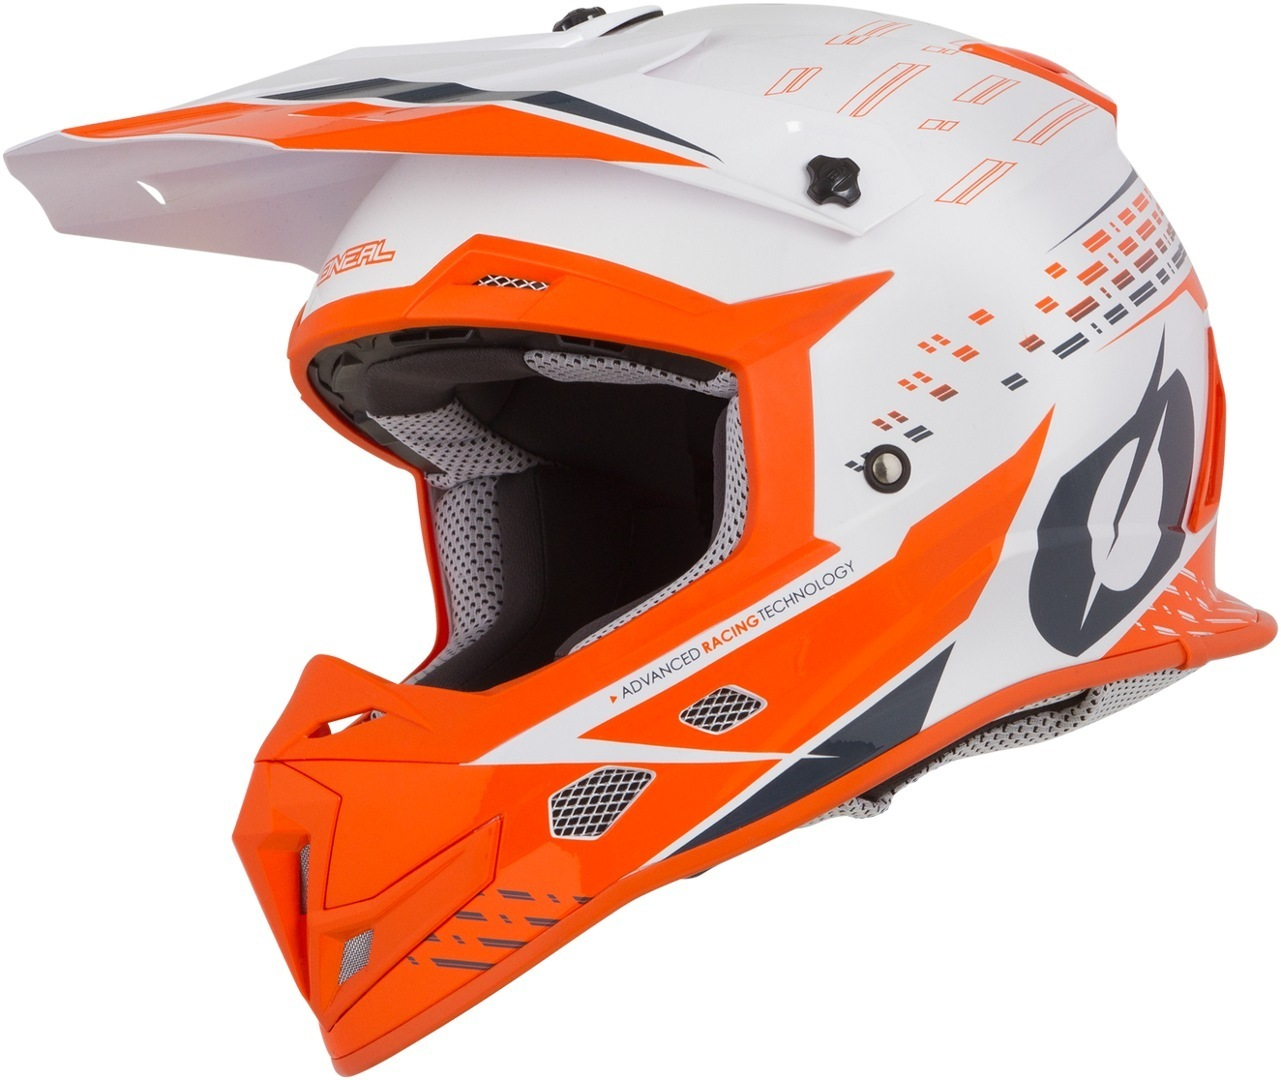 Oneal 5Series Trace Motocross Helm, weiss-orange, Größe S, weiss-orange, Größe S